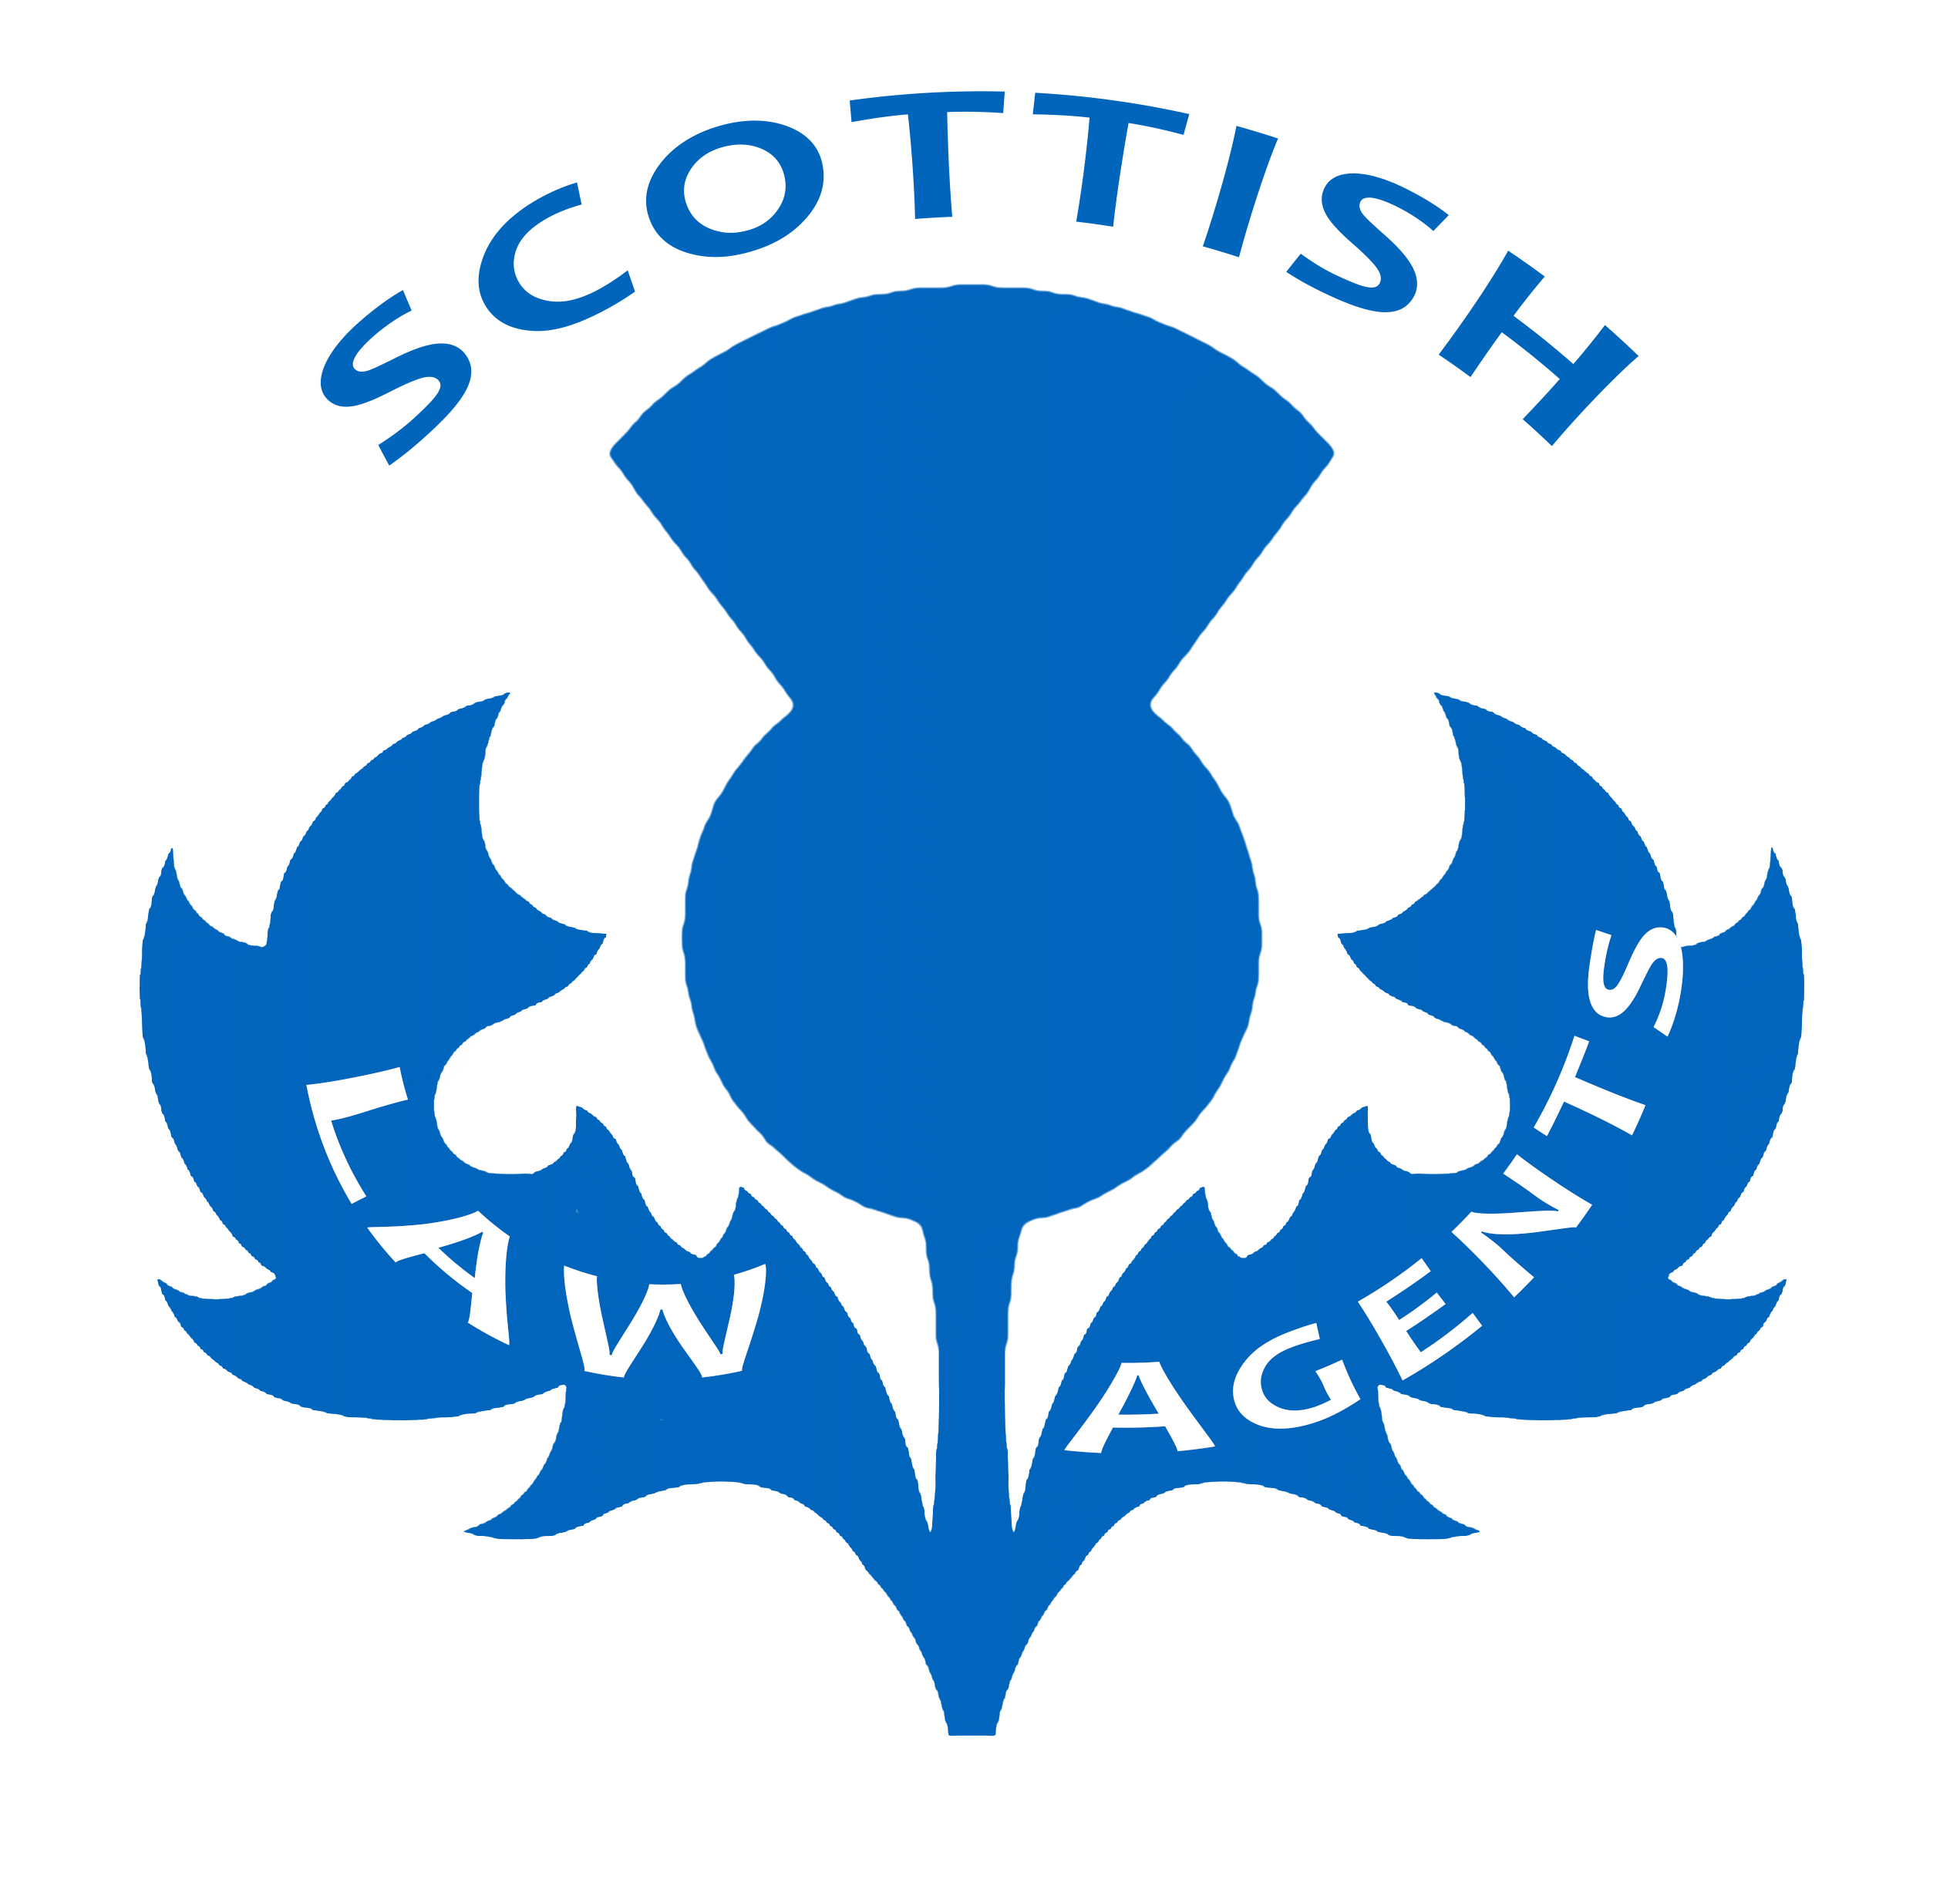 Scottish Law Agents Society